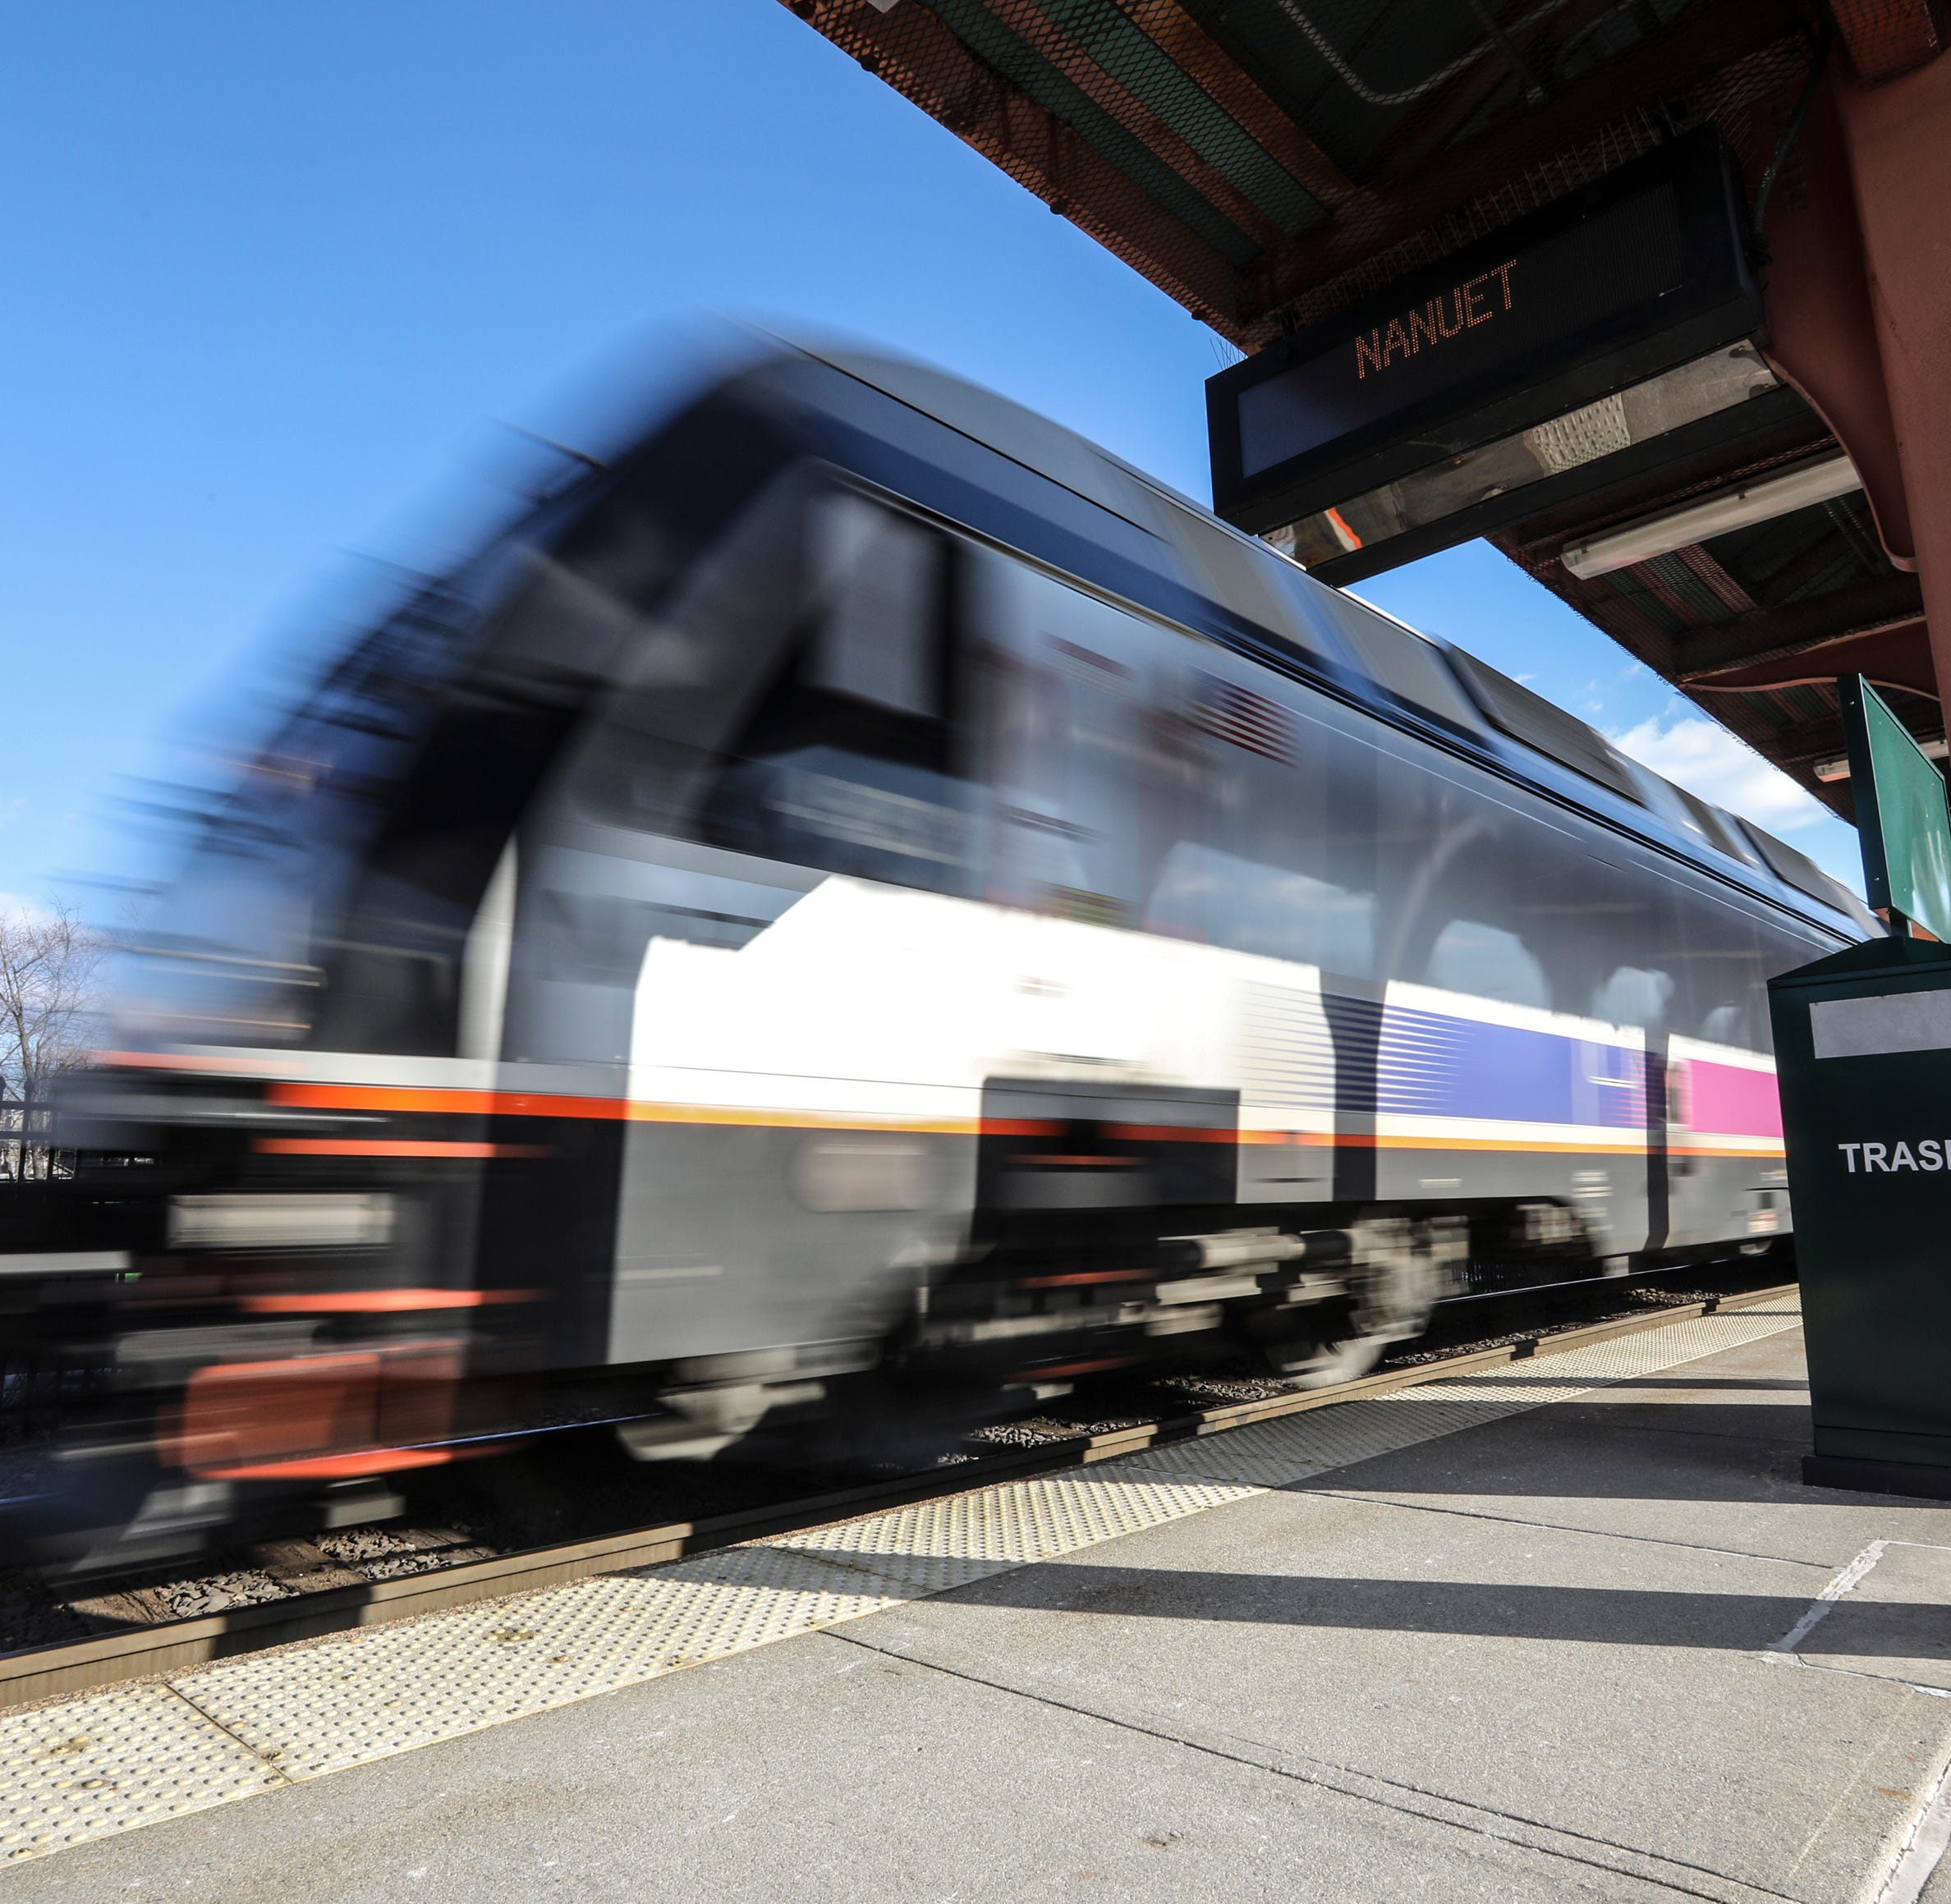 Commuter rail advocate: West-of-Hudson riders deserve reliable service